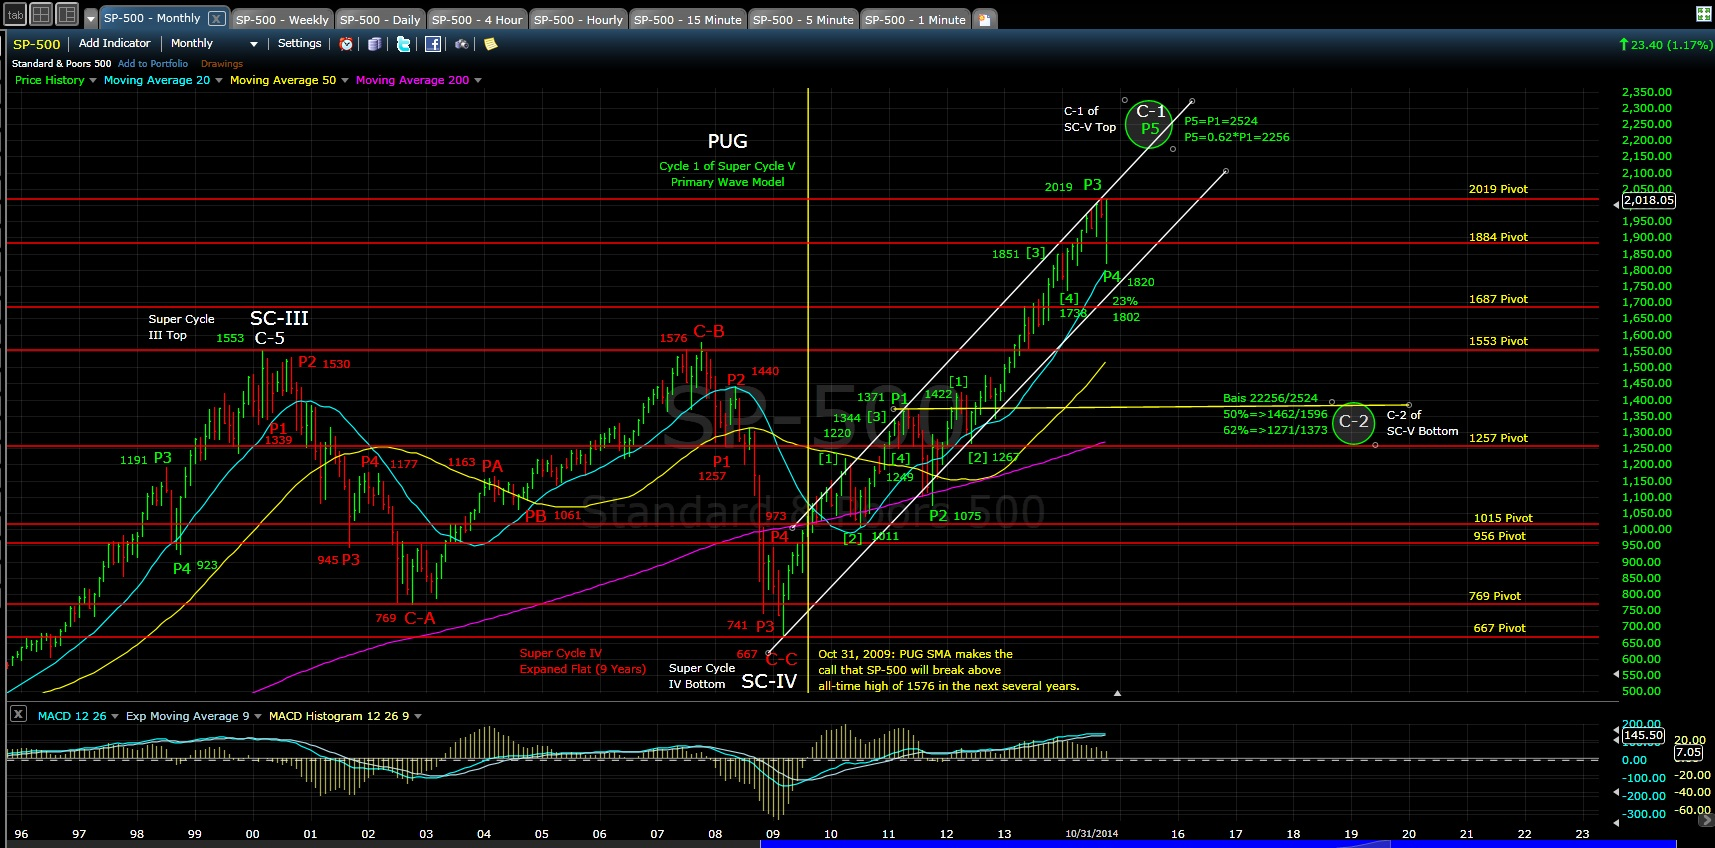 PUG SP-500 monthly chart 10-31-14